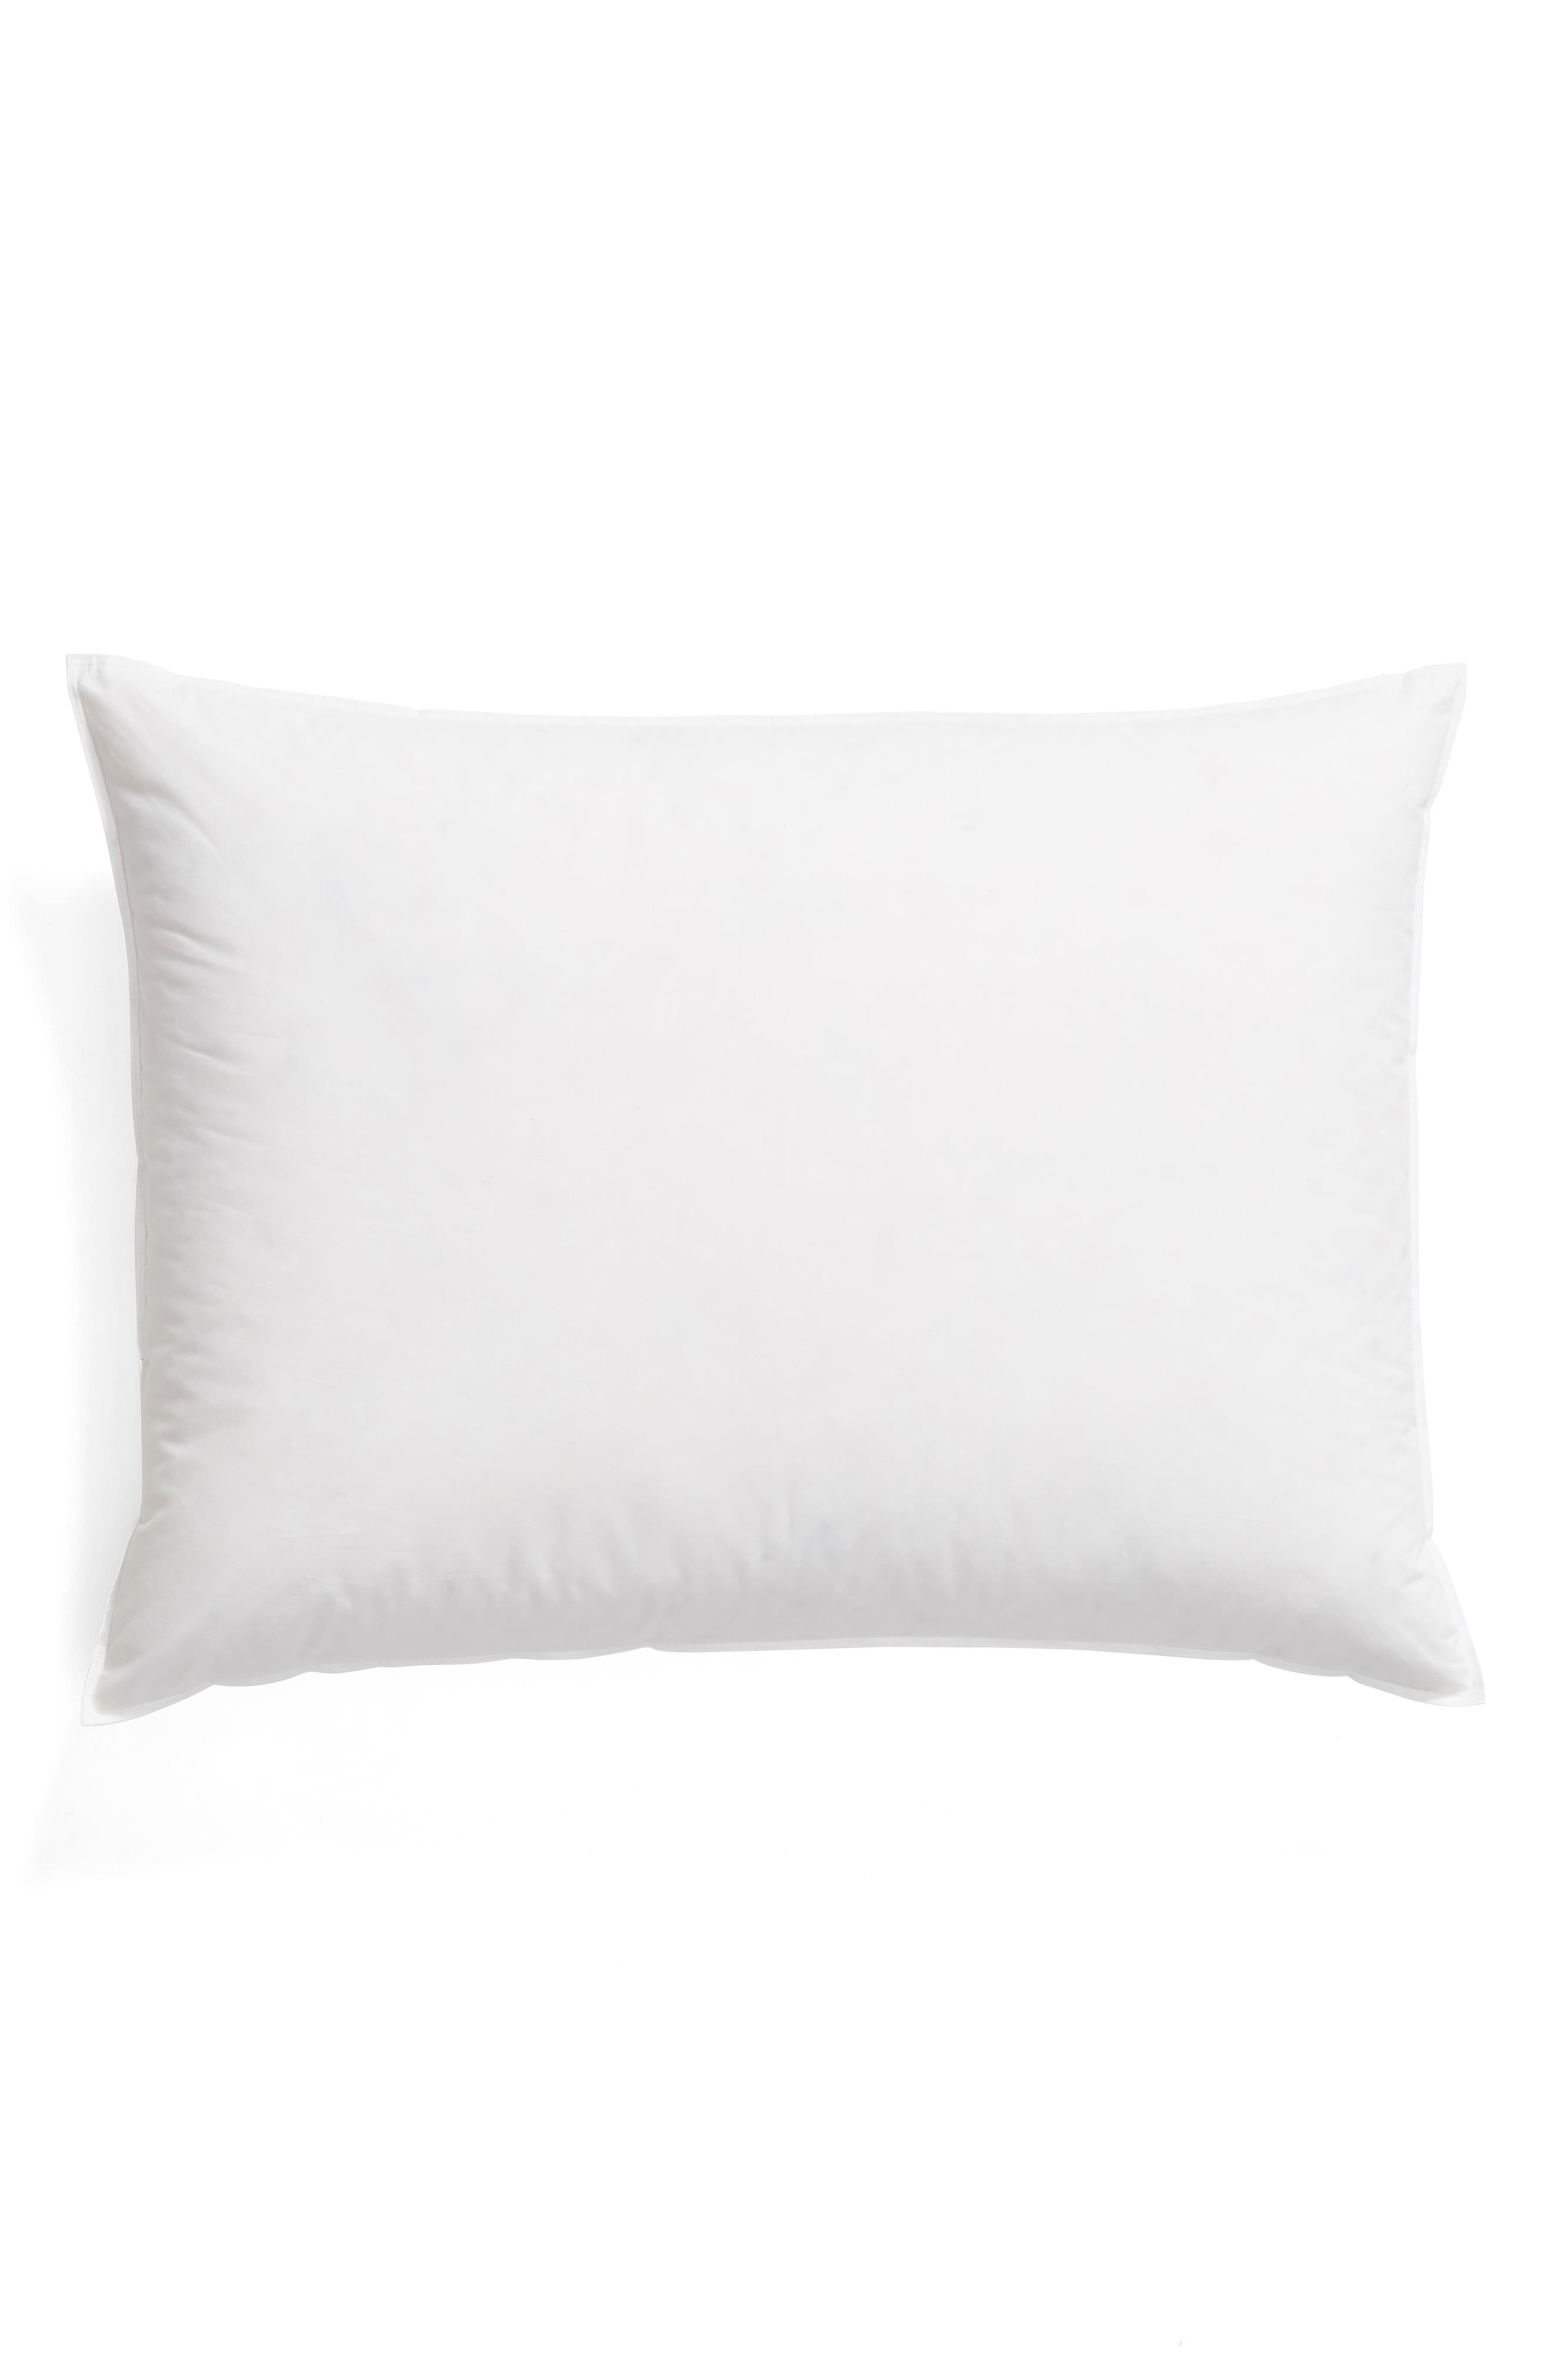 MATOUK Montreux Firm 600 Fill Power Down 280 Thread Count Pillow, Main, color, WHITE